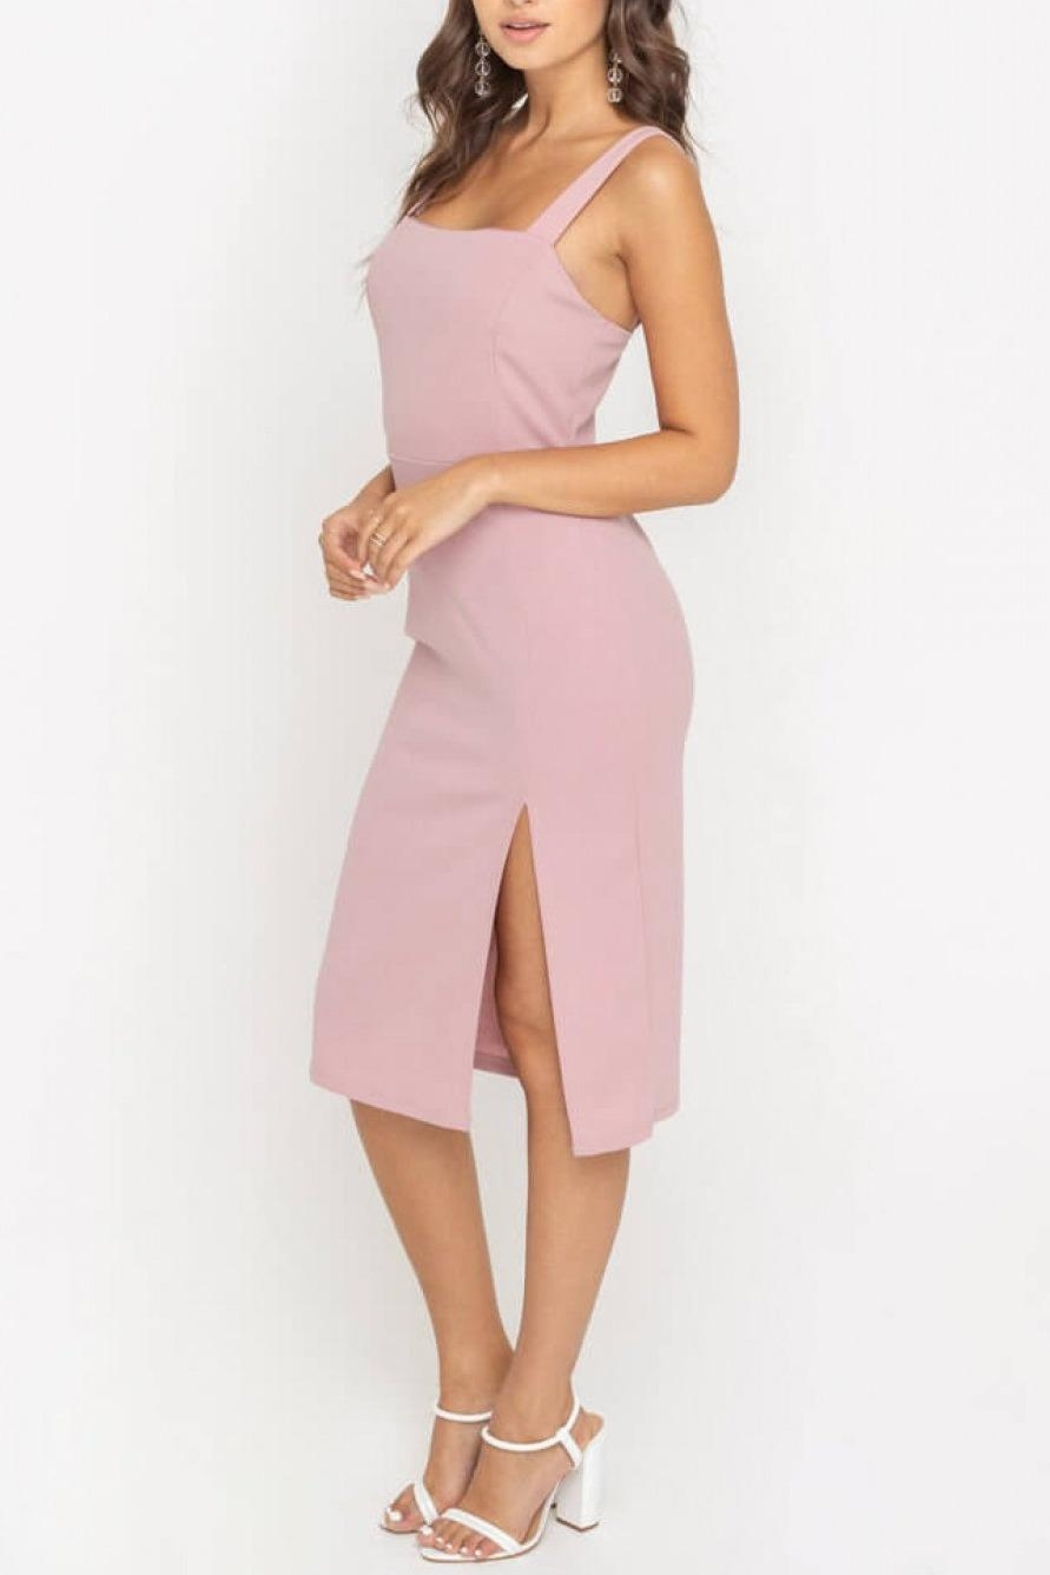 Lush Clothing  Side-Slit Fitted Cocktail-Dress - Front Full Image